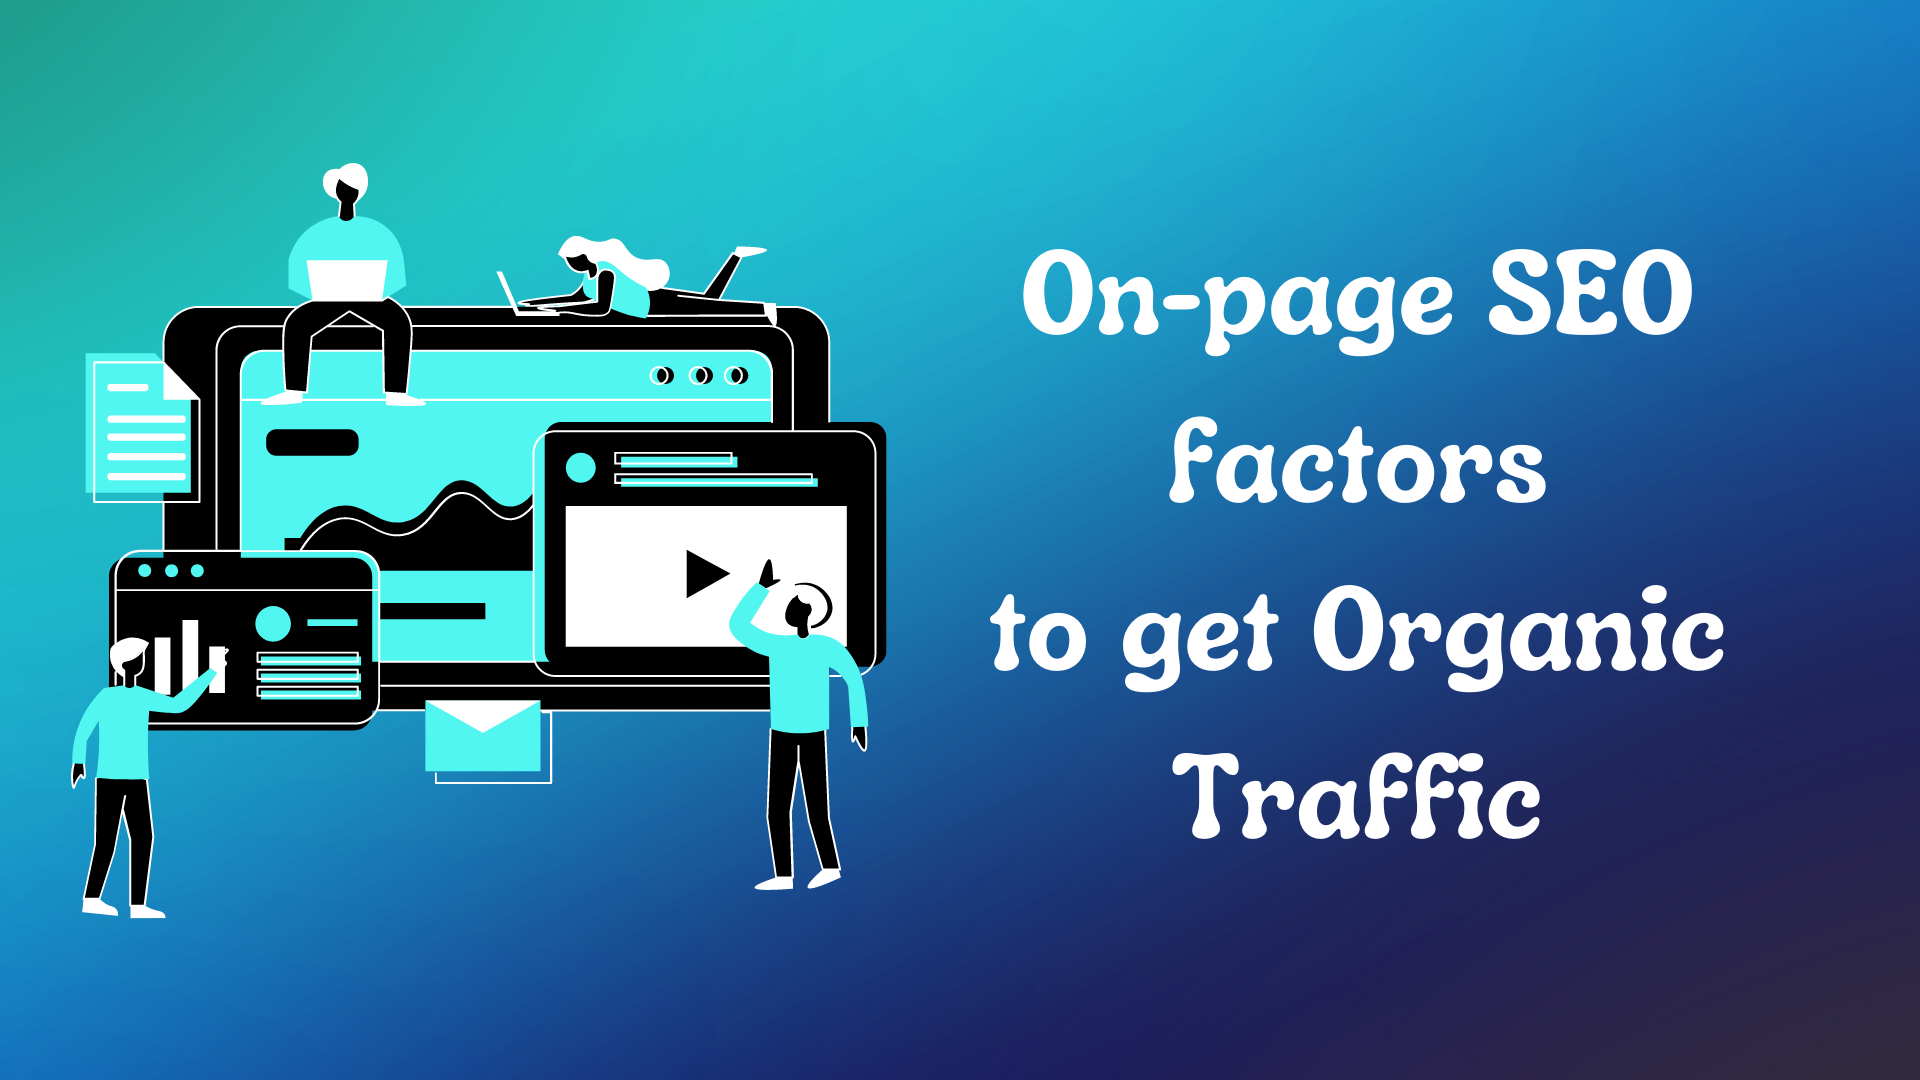 Important on-page SEO factors to get organic traffic